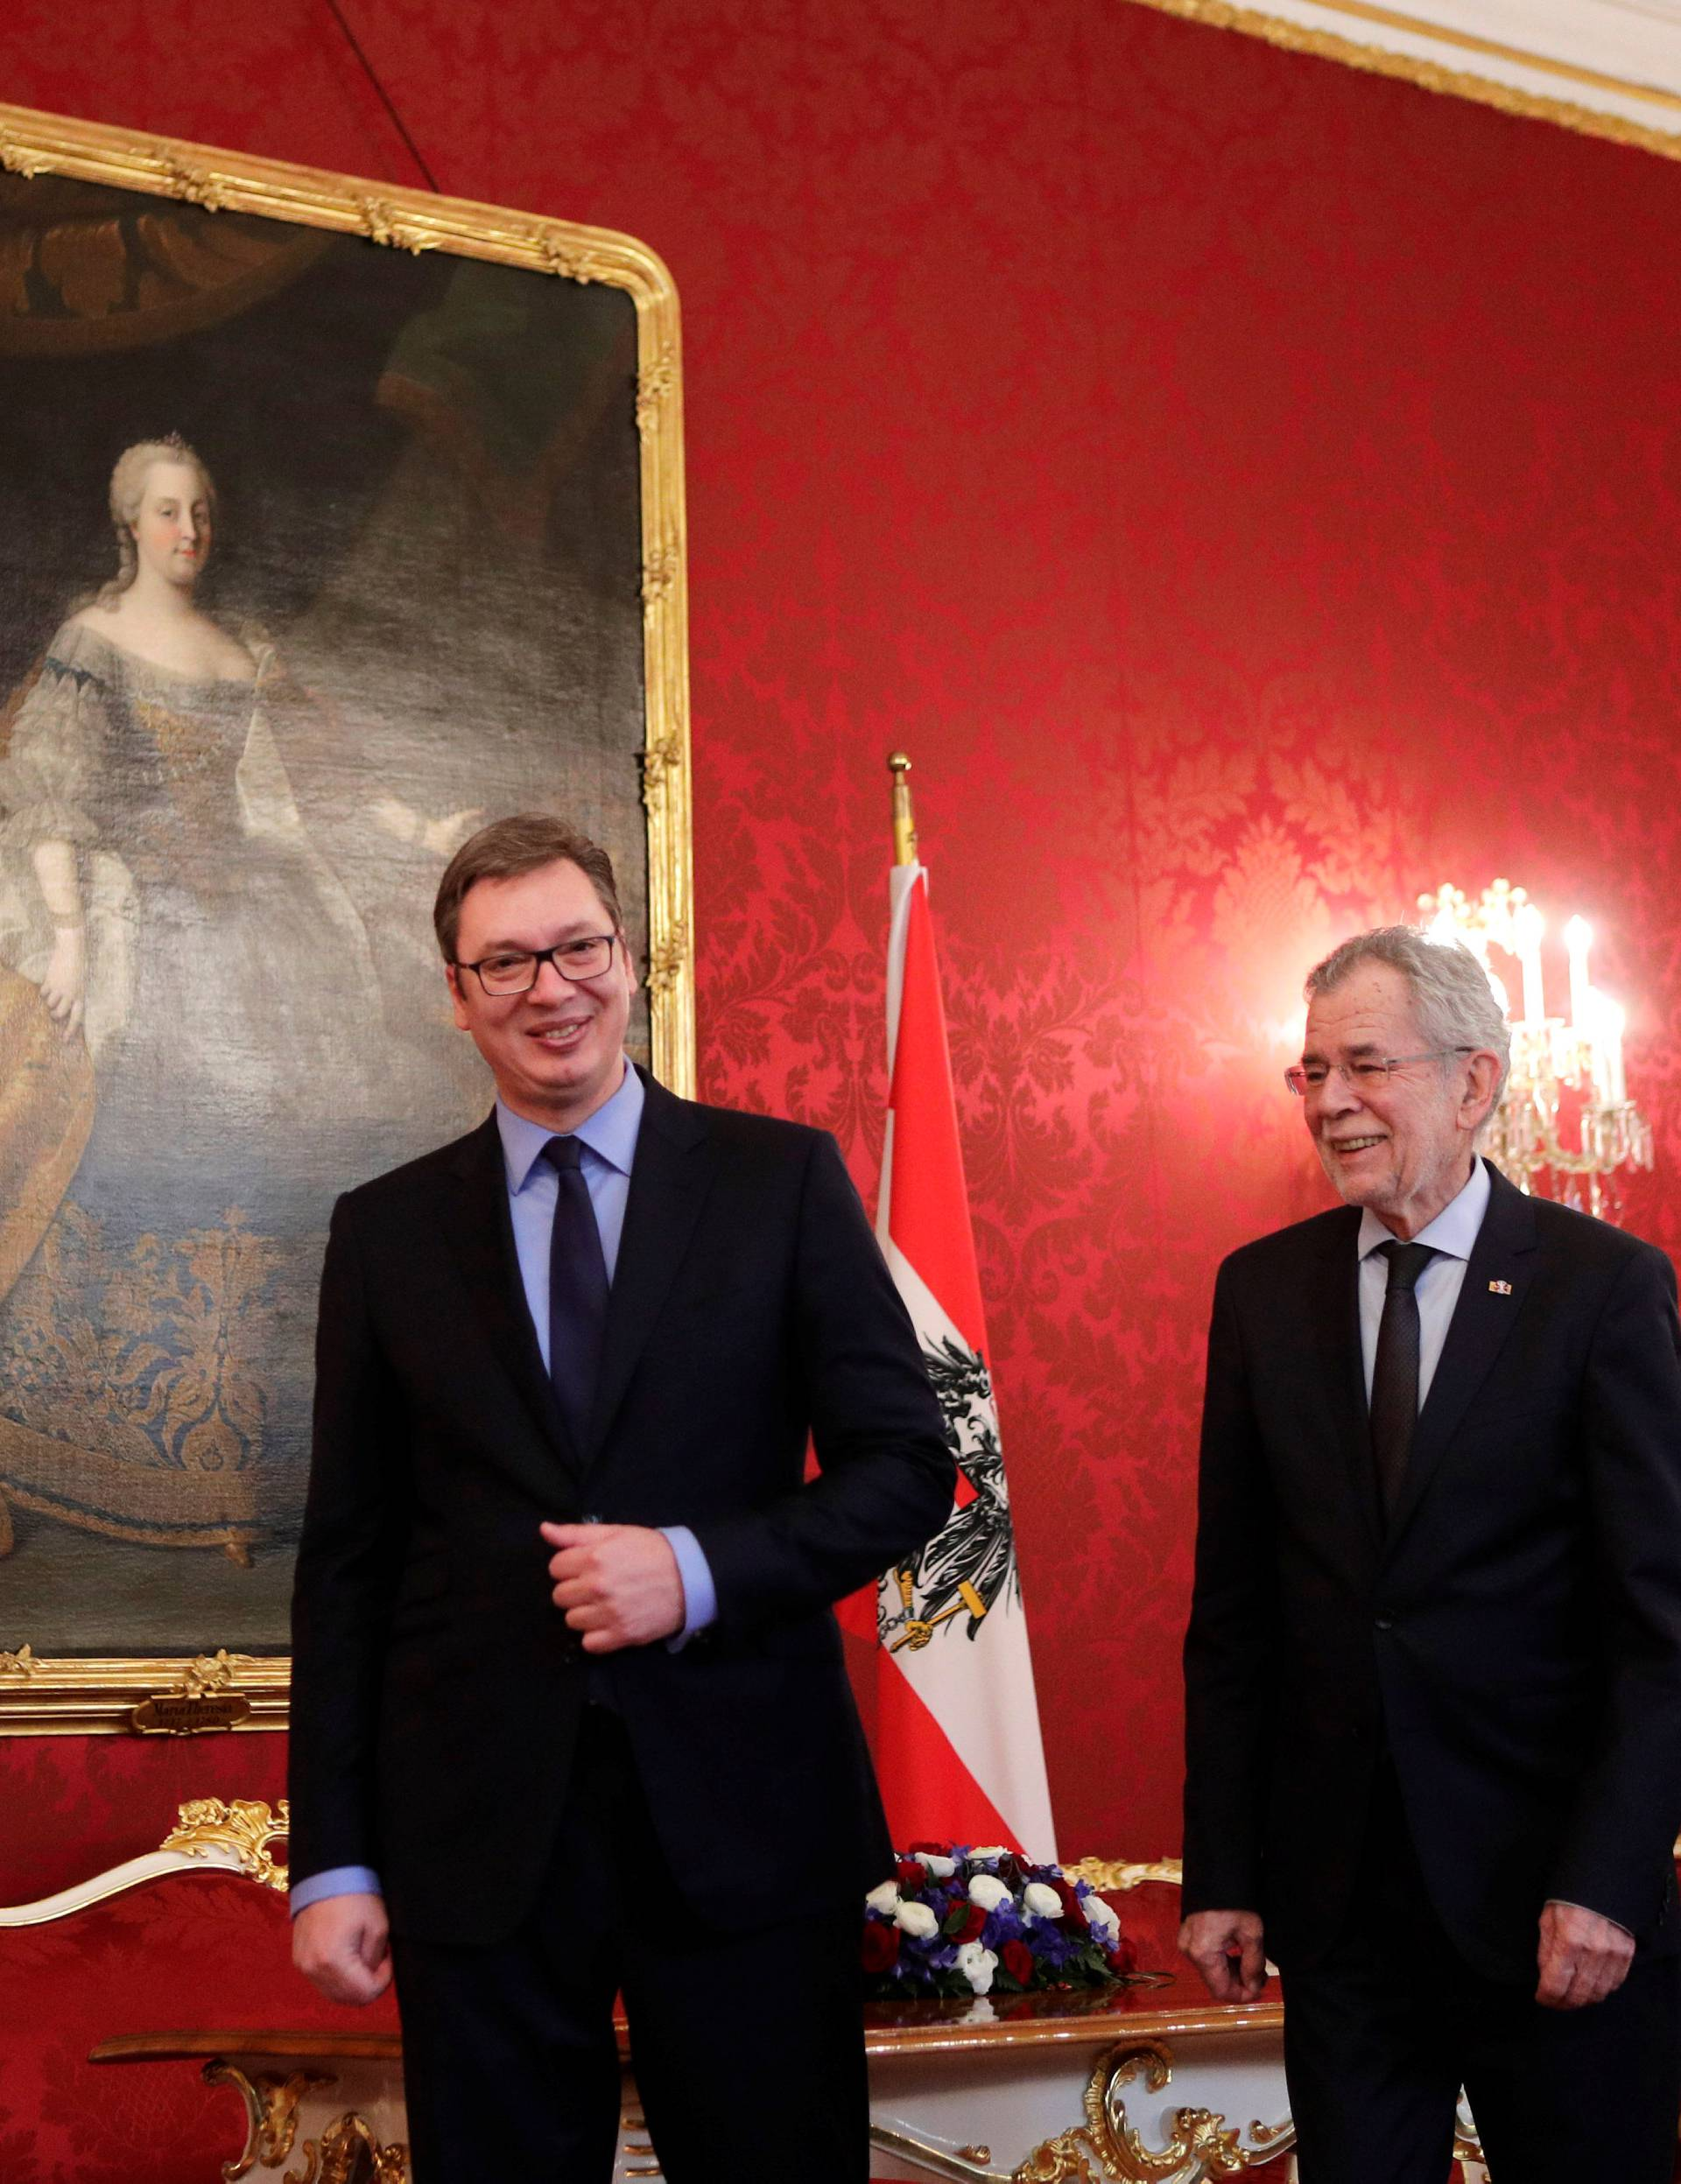 Serbia's President Vucic and Austria's President Van der Bellen walk by a portrait of former Empress Maria Theresa at the presidential office in Vienna